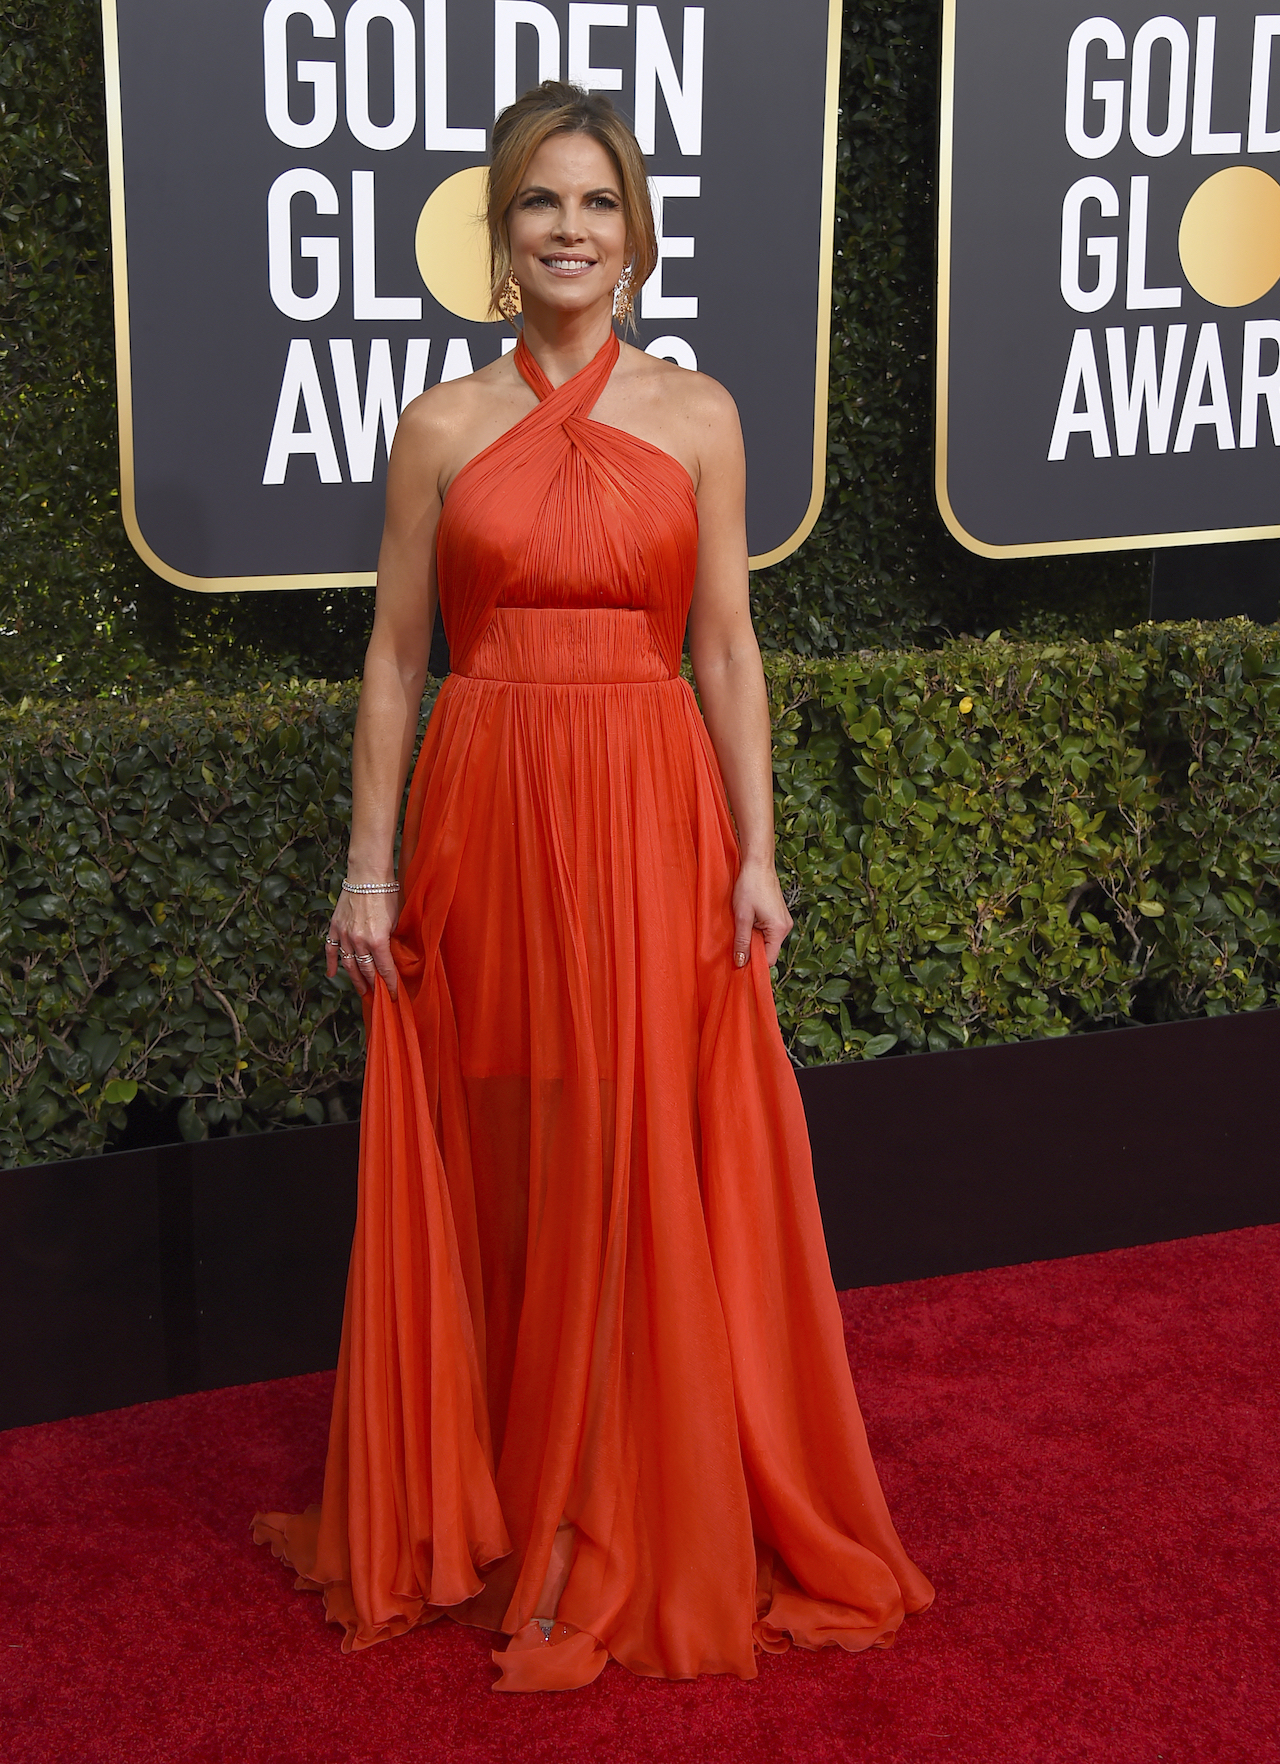 "<div class=""meta image-caption""><div class=""origin-logo origin-image ap""><span>AP</span></div><span class=""caption-text"">Natalie Morales arrives at the 76th annual Golden Globe Awards at the Beverly Hilton Hotel on Sunday, Jan. 6, 2019, in Beverly Hills, Calif. (Jordan Strauss/Invision/AP)</span></div>"